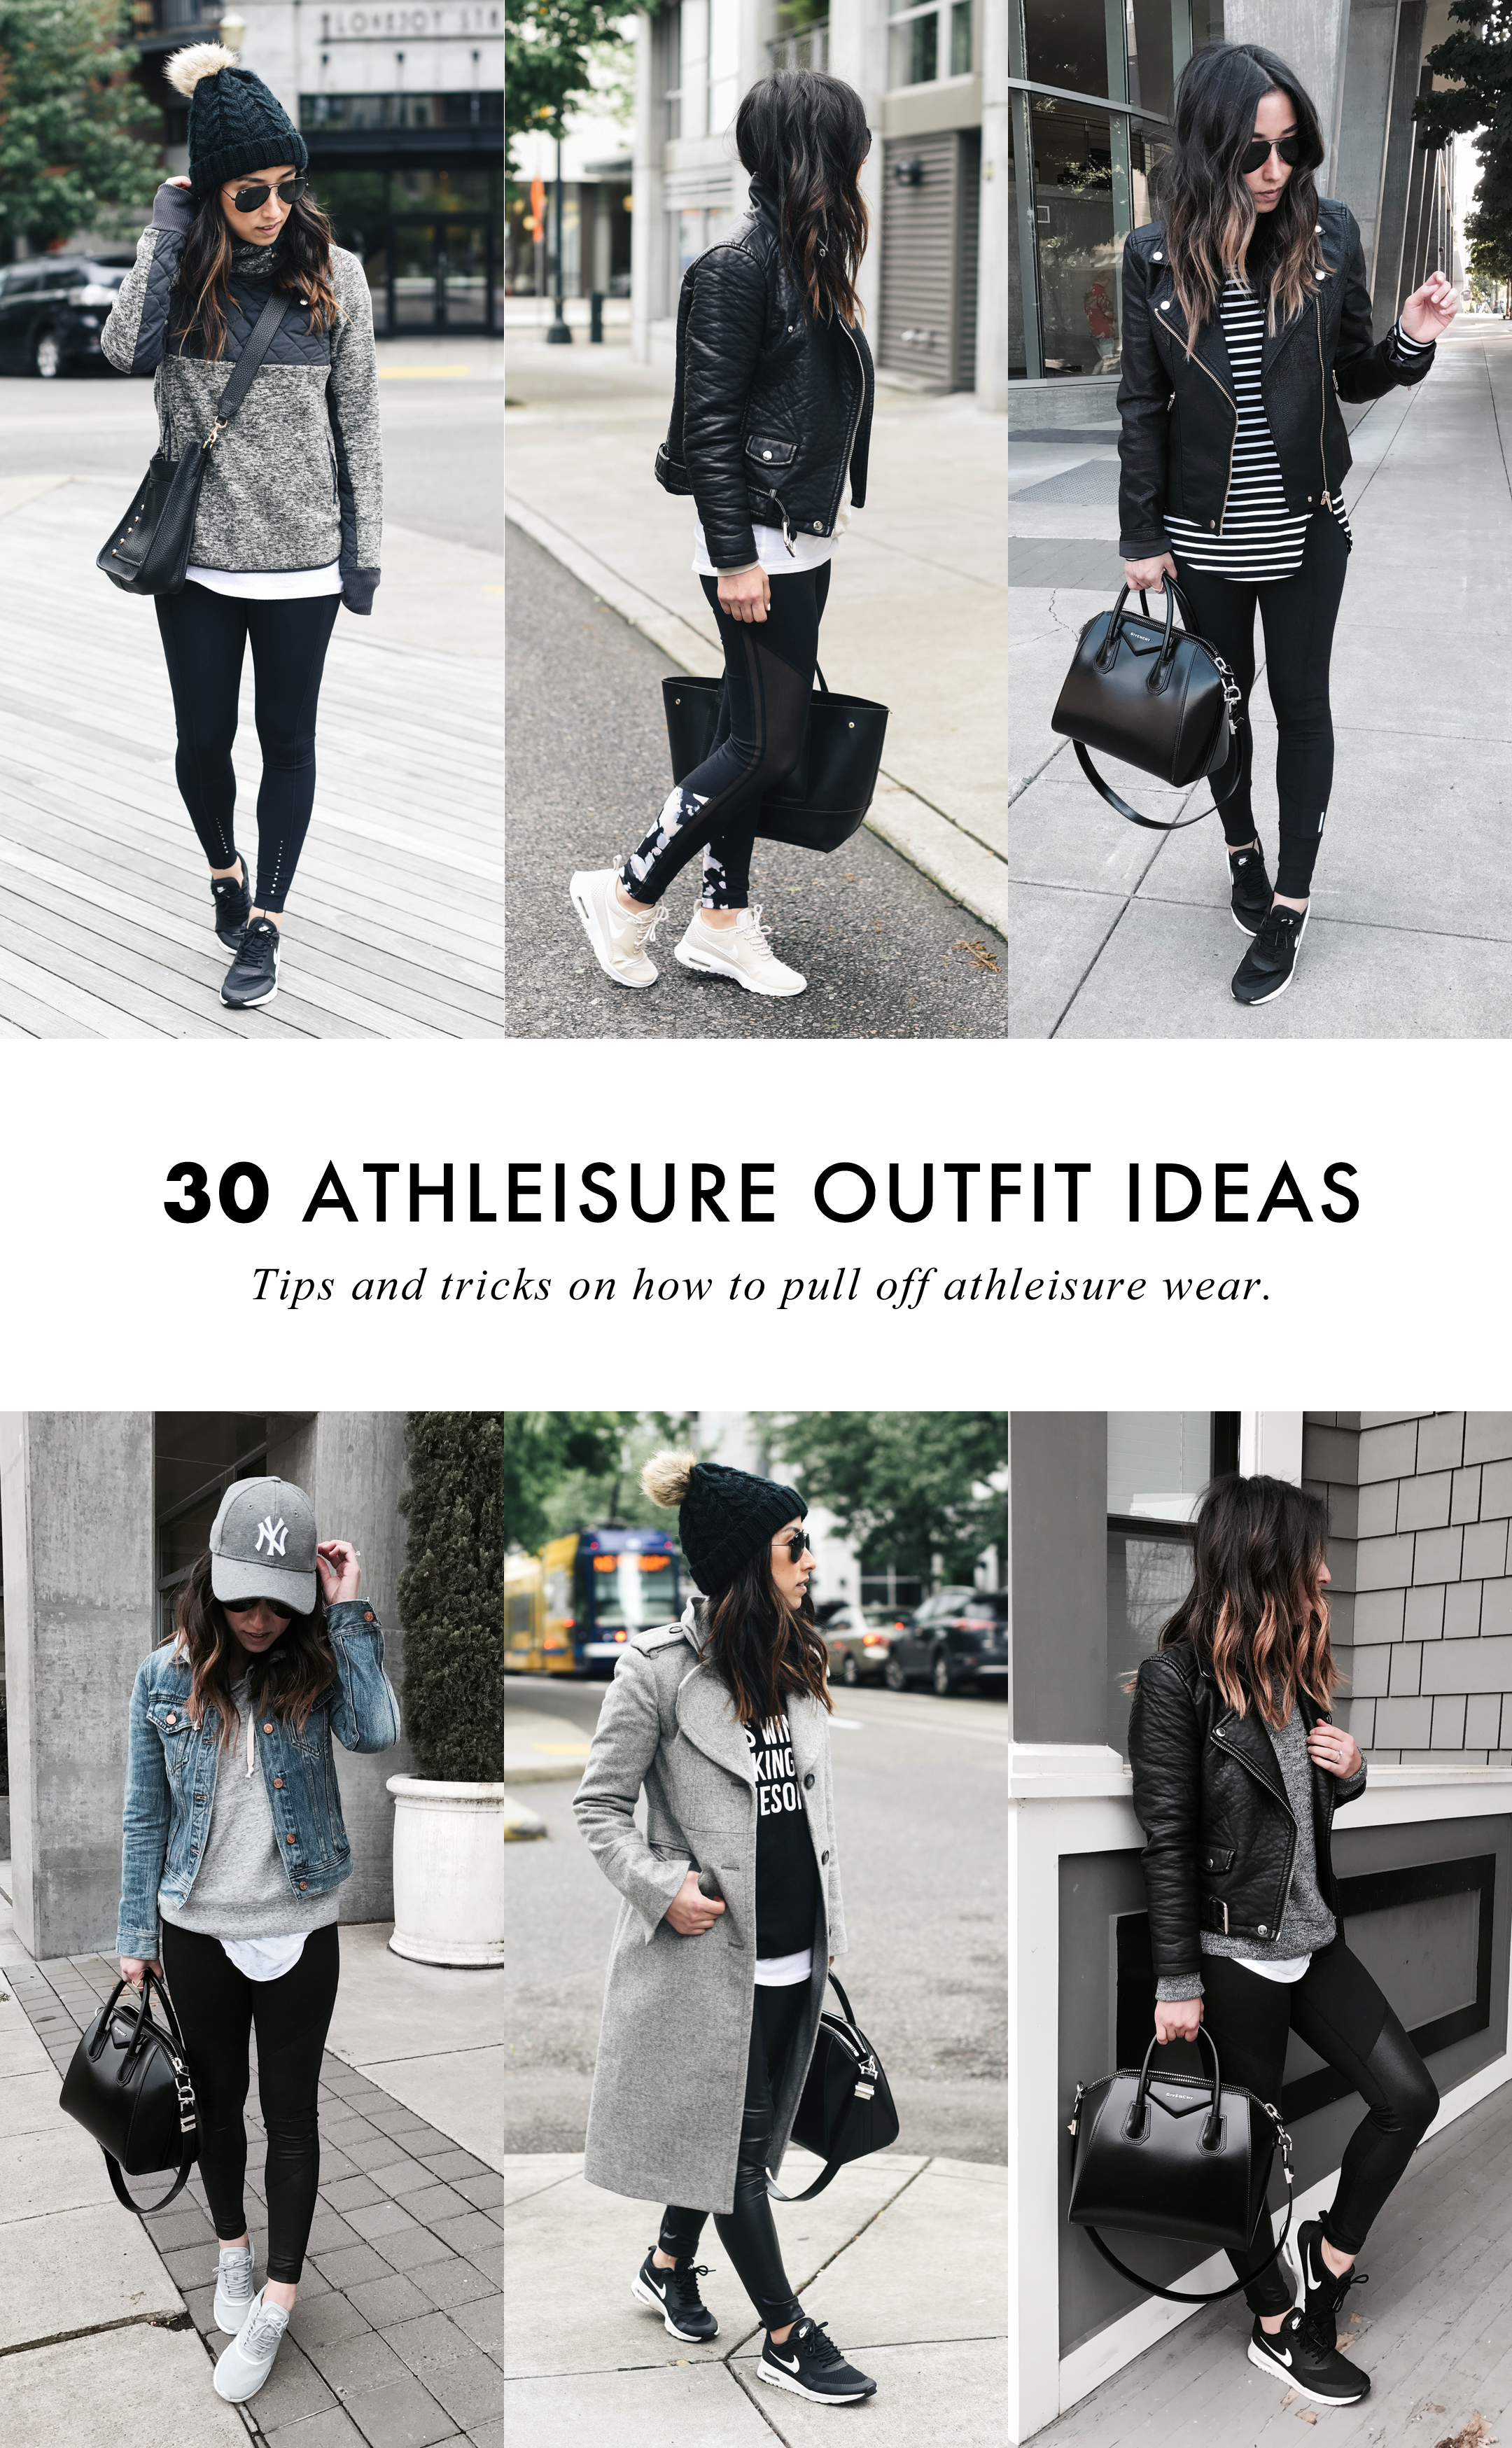 How to wear Athleisure